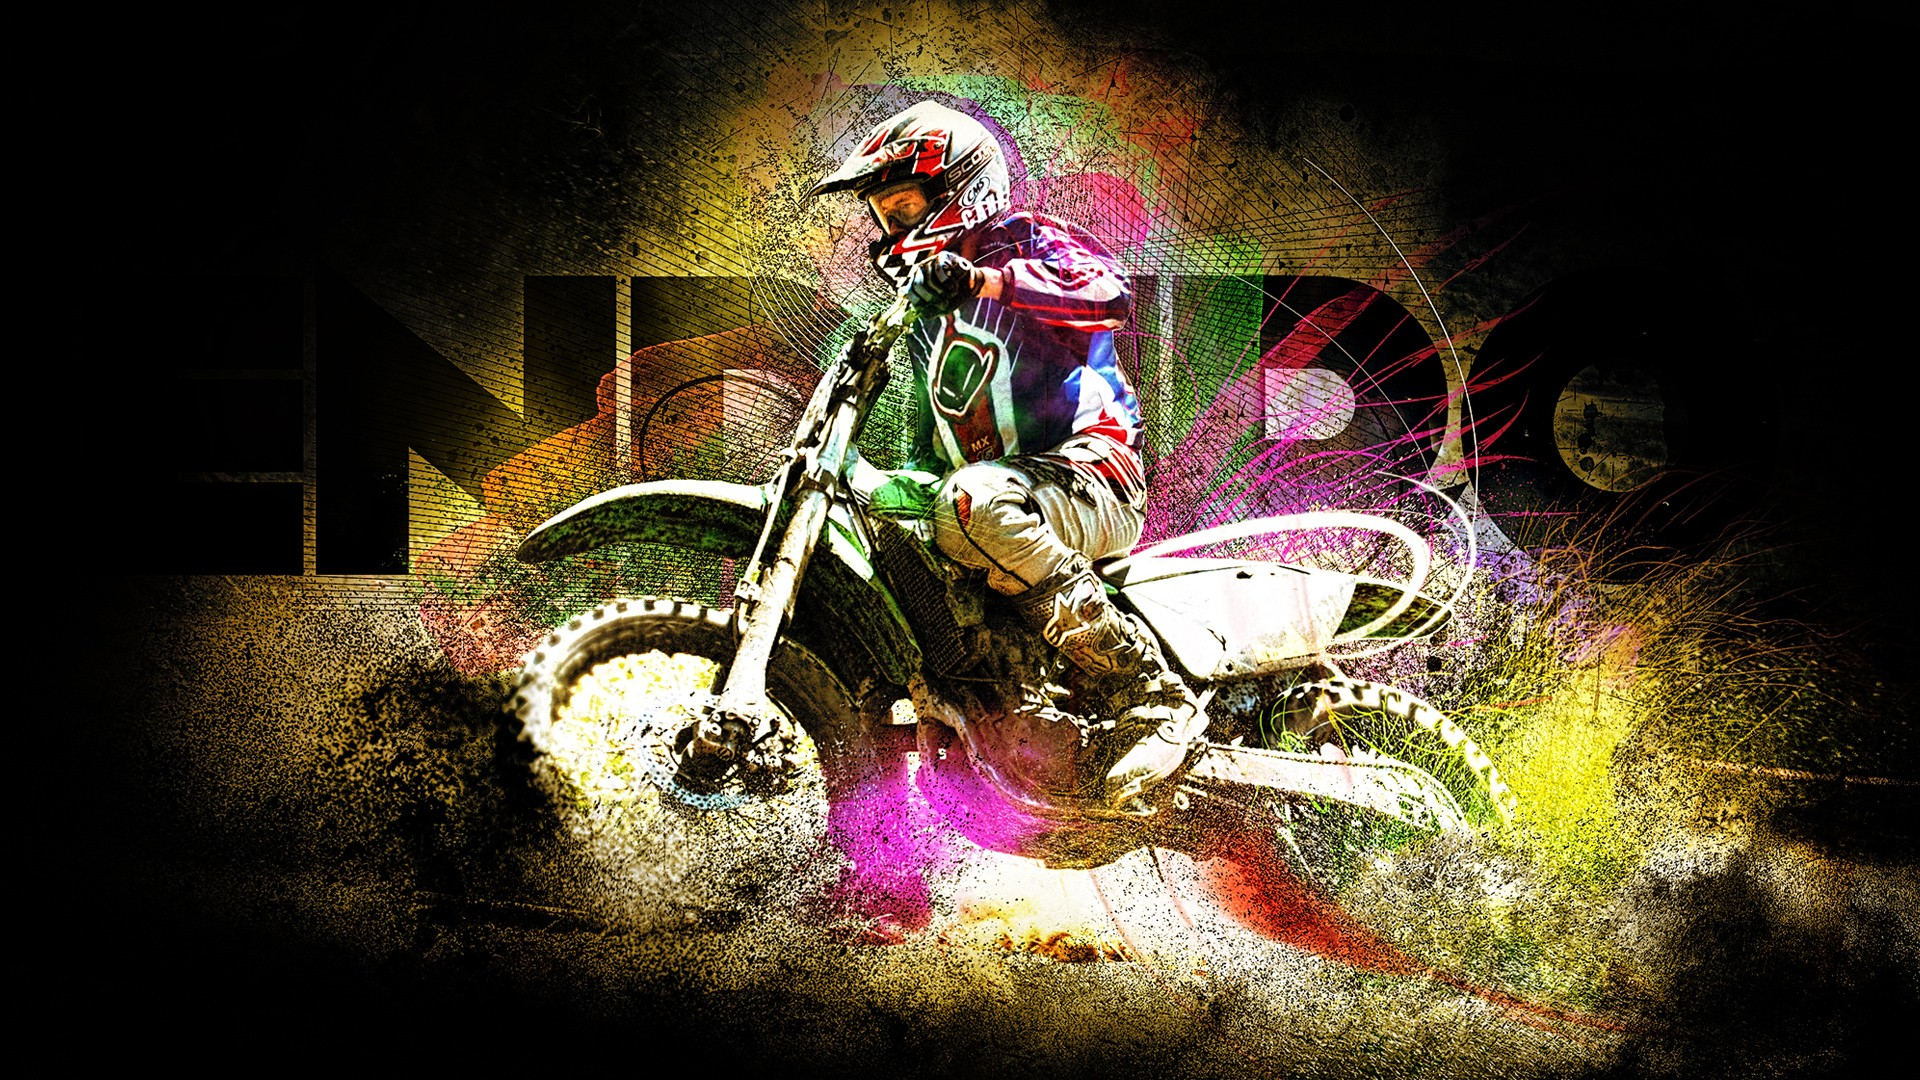 1366x768 Hd Wallpapers 3d Enduro Racing Wallpapers Hd Wallpapers Id 10422